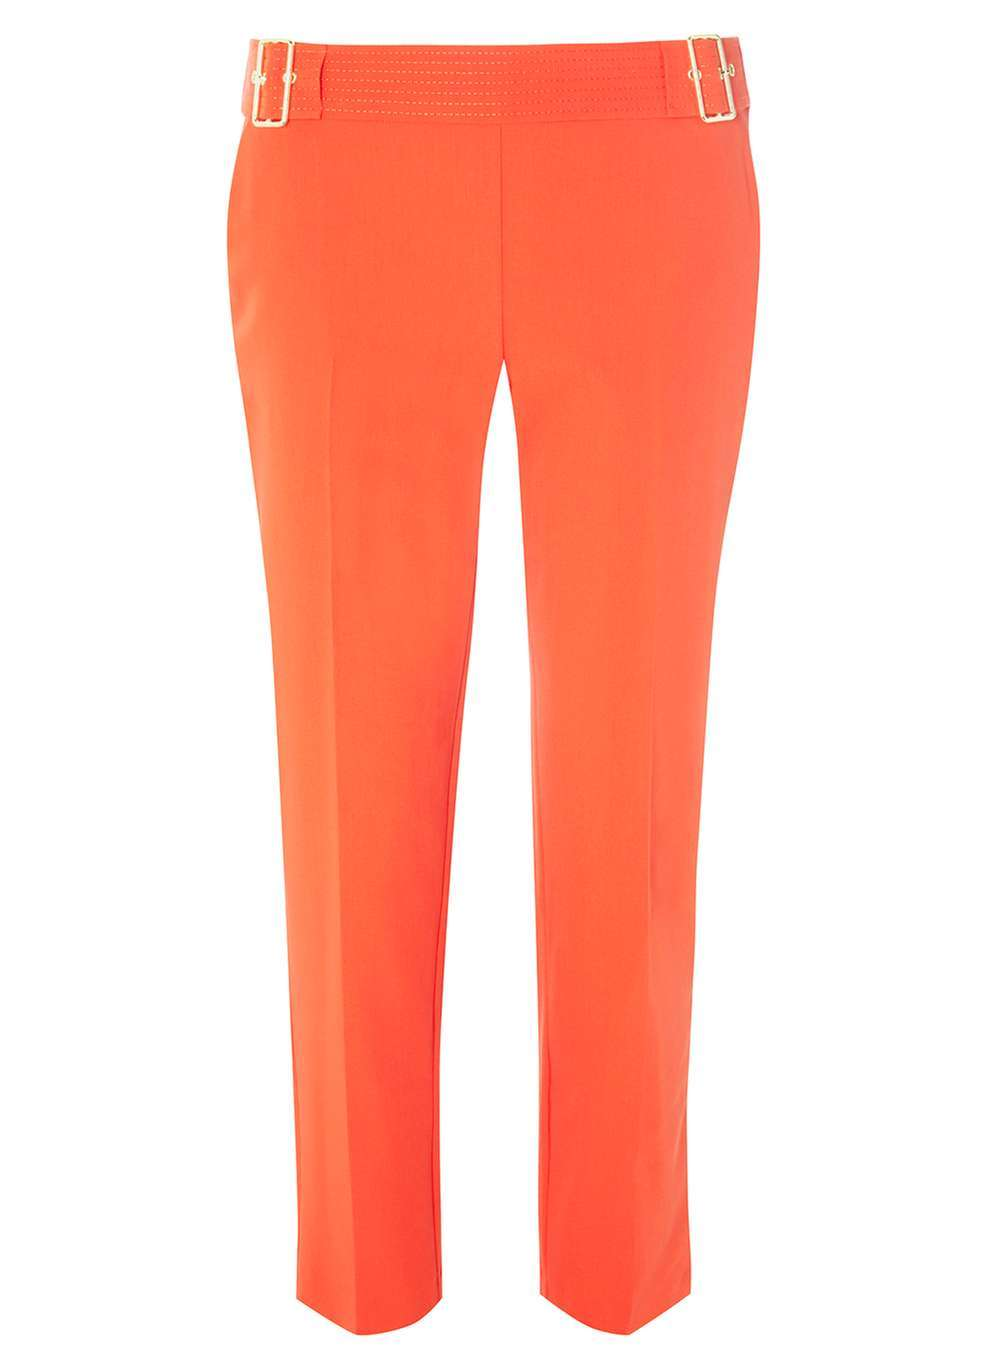 Womens Red Top Stitch Straight Leg Trousers Red - length: standard; pattern: plain; waist: mid/regular rise; predominant colour: bright orange; occasions: casual, creative work; fibres: polyester/polyamide - mix; fit: slim leg; pattern type: fabric; texture group: woven light midweight; style: standard; season: a/w 2016; wardrobe: highlight